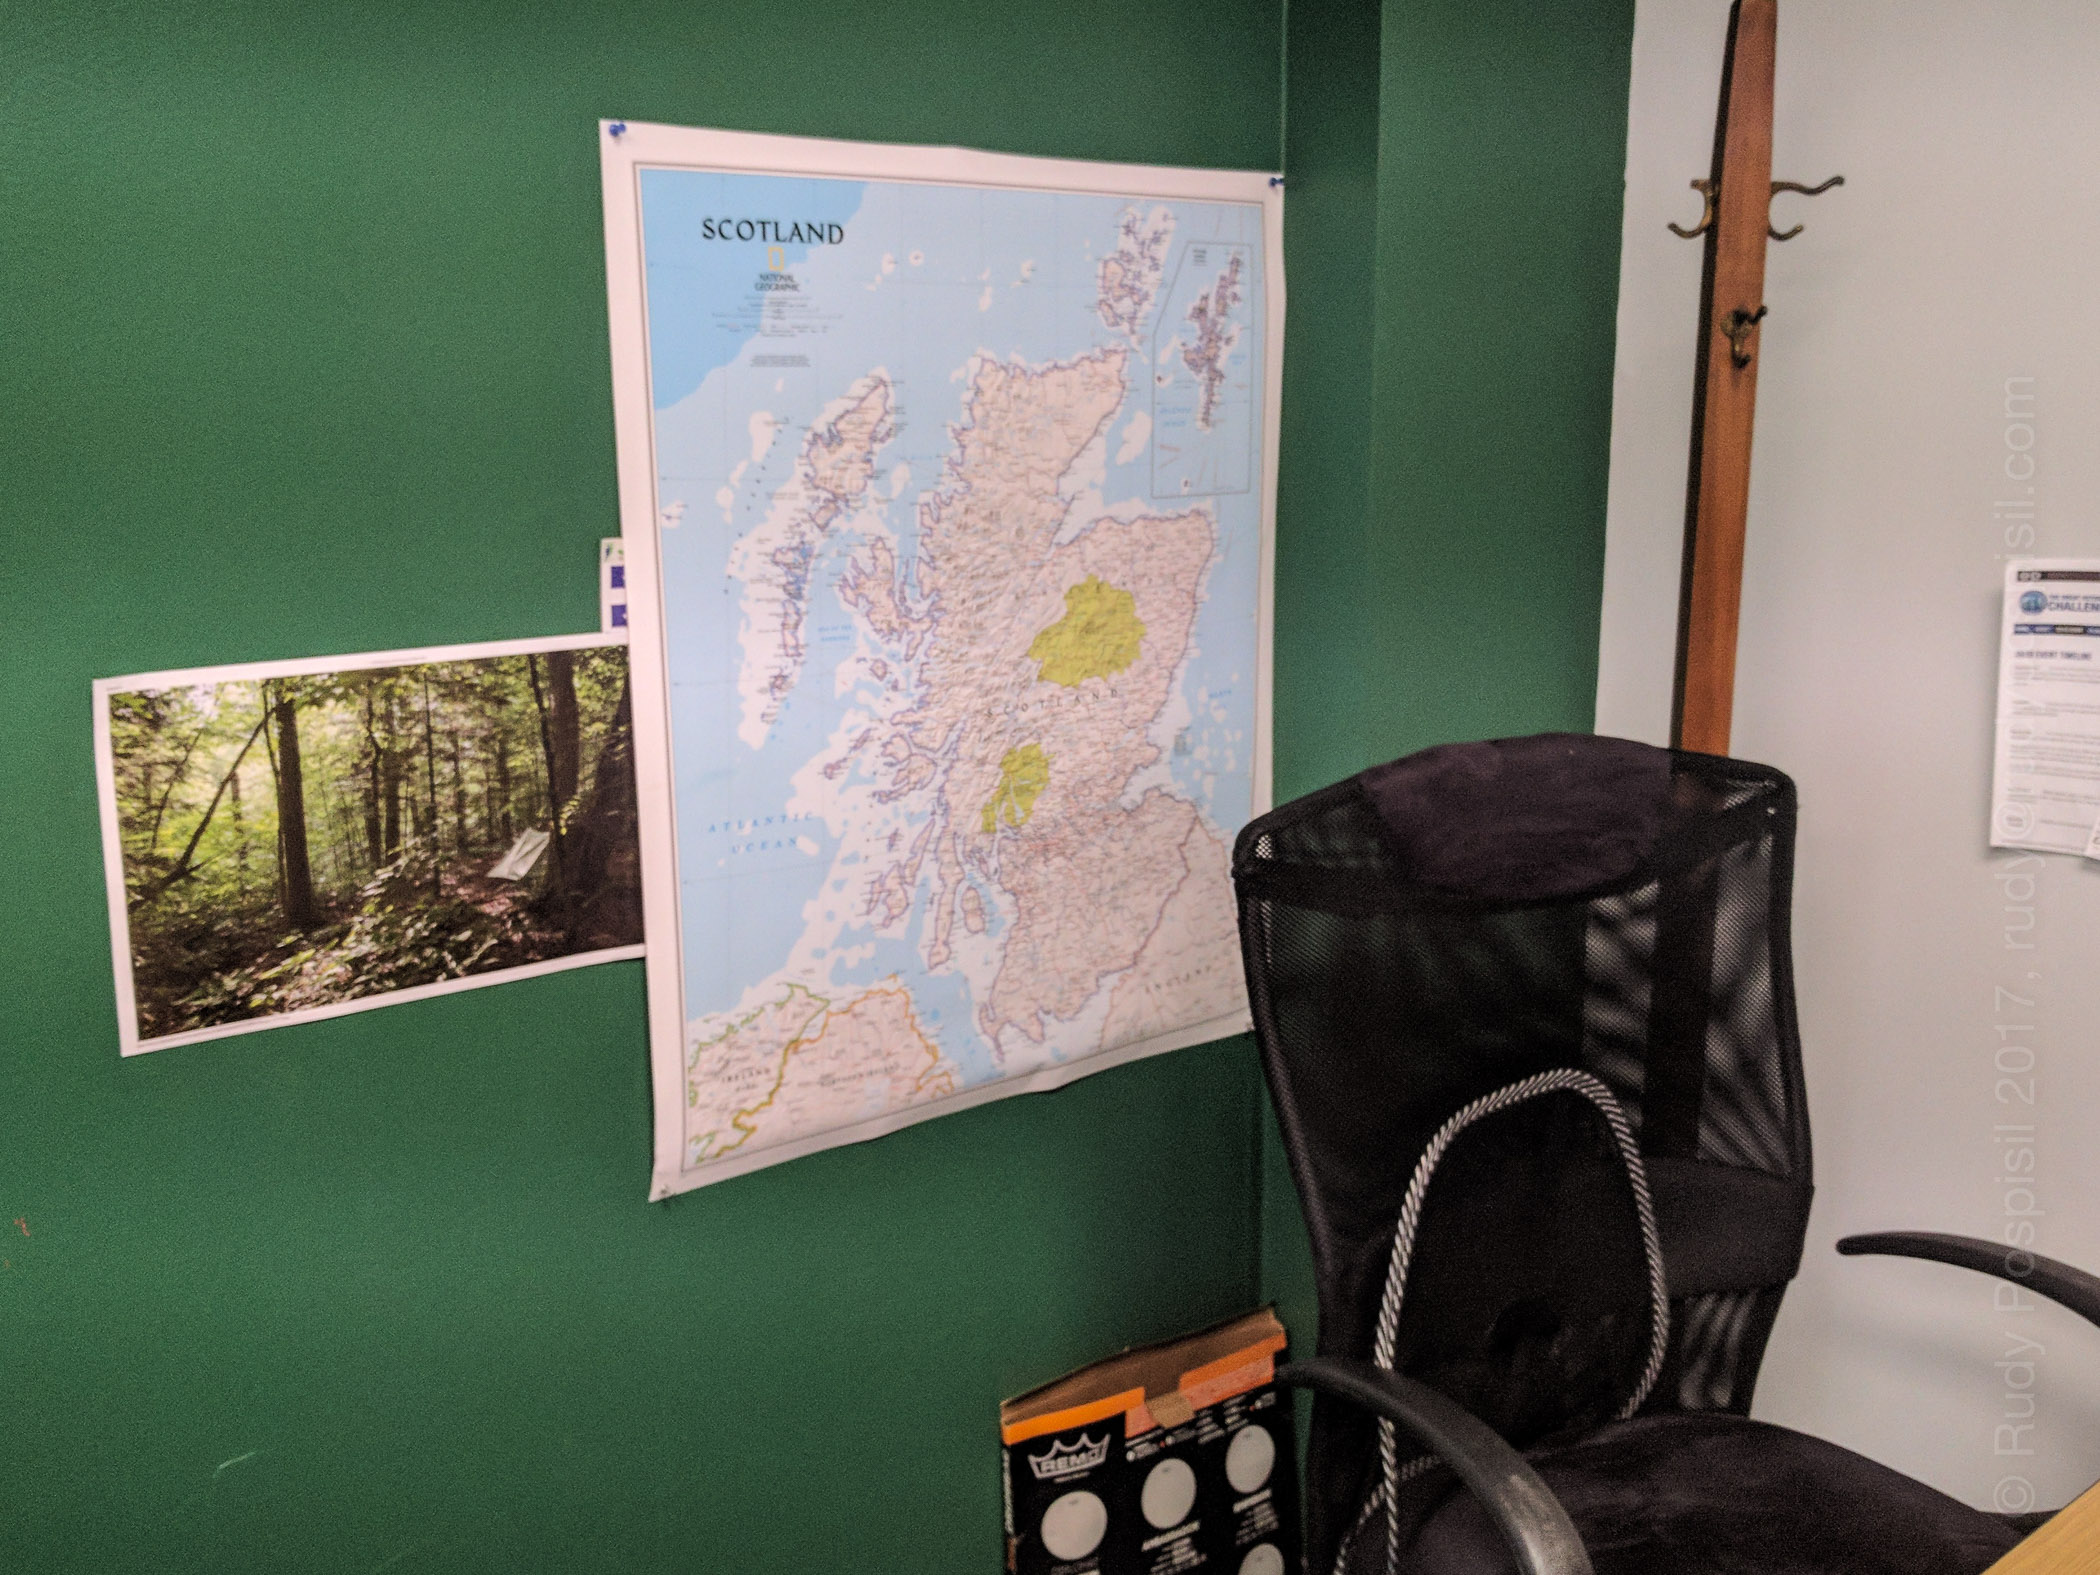 Hanging up a map of Scotland in my office as I begin plans for (hopefully) backpacking across Scotland in the 2018 TGO.